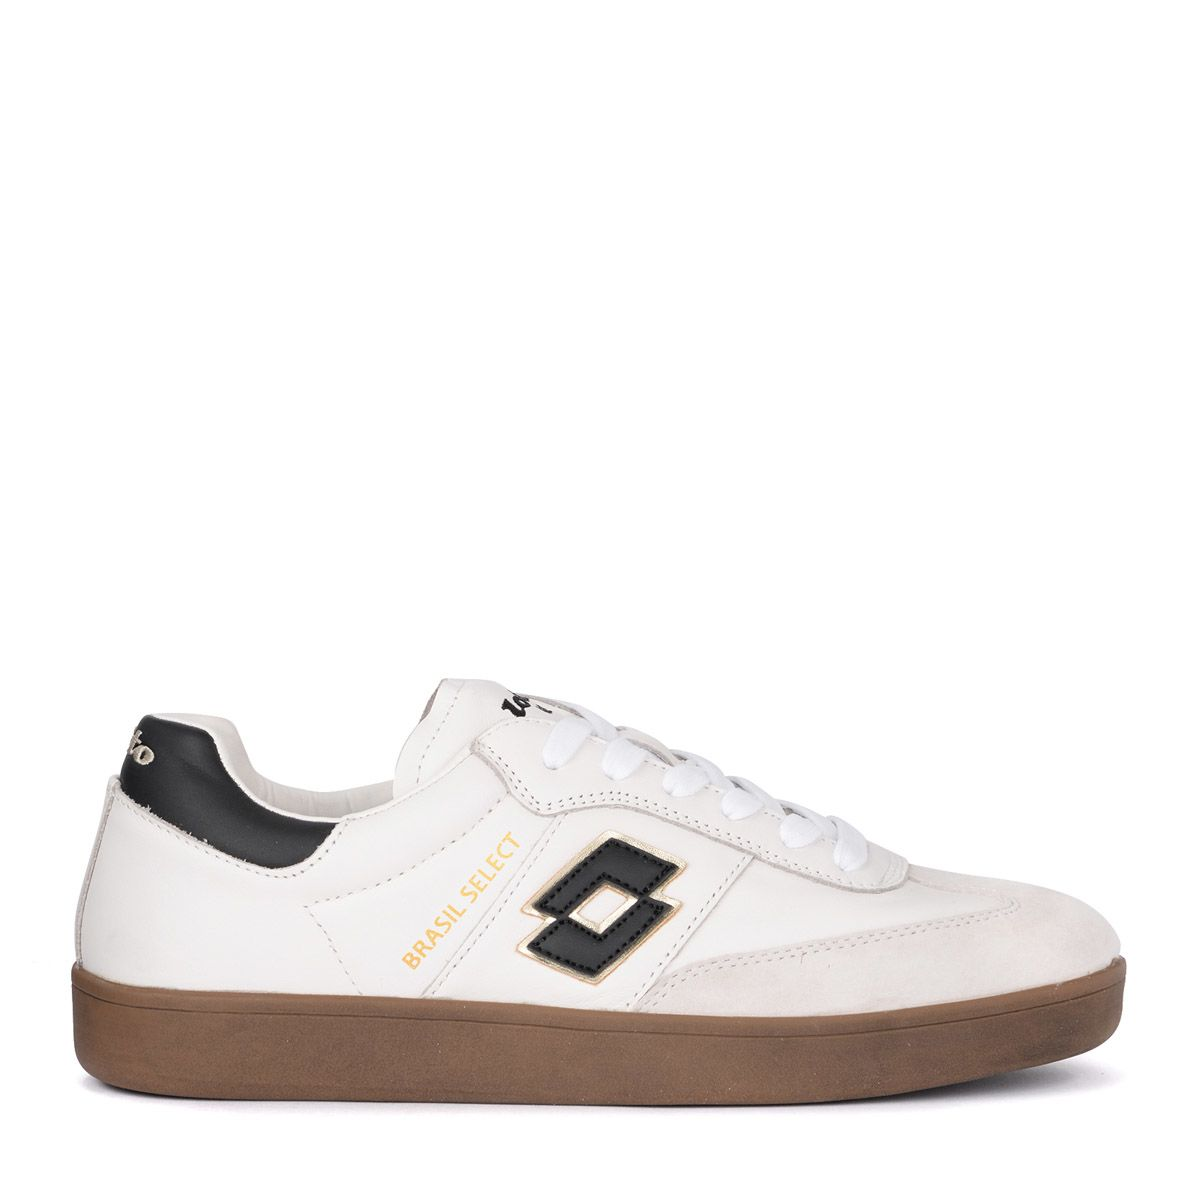 LOTTO LEGGENDA Lotto Brasil Select Black And White Leather Sneaker in Bianco